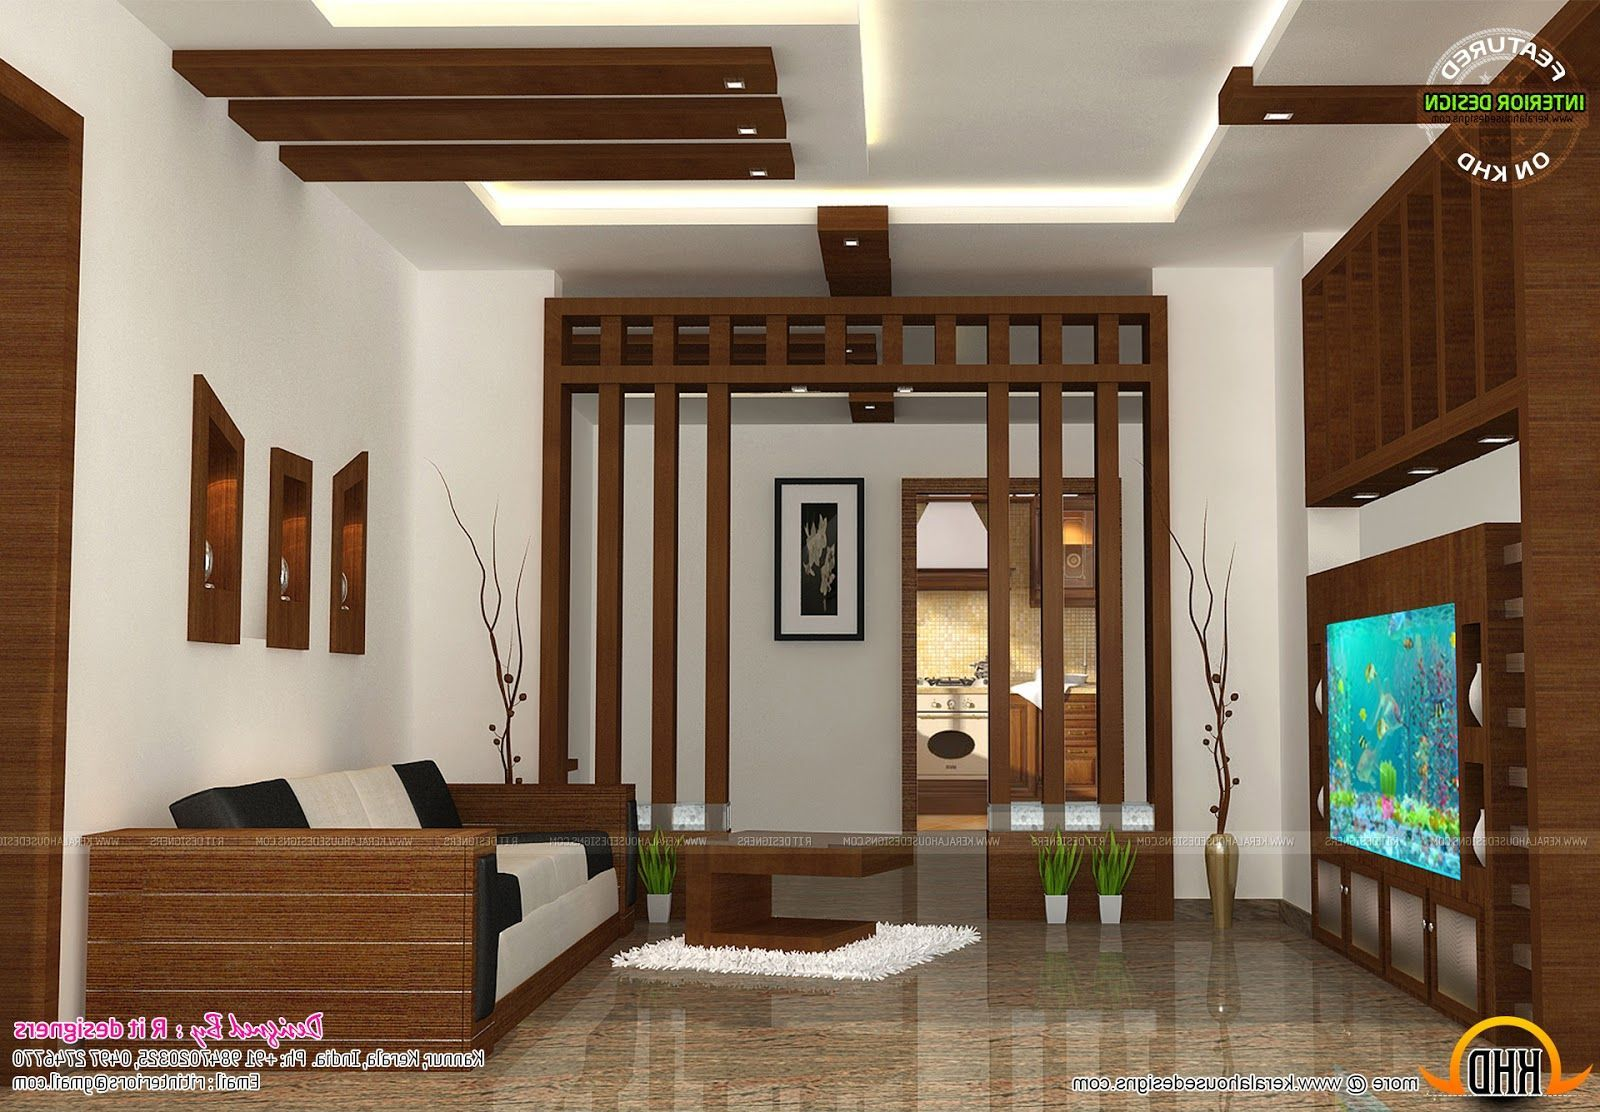 Interior Design Living Room Kerala Interior Design Dining Room Living Room Kerala House Interior Design Living Room